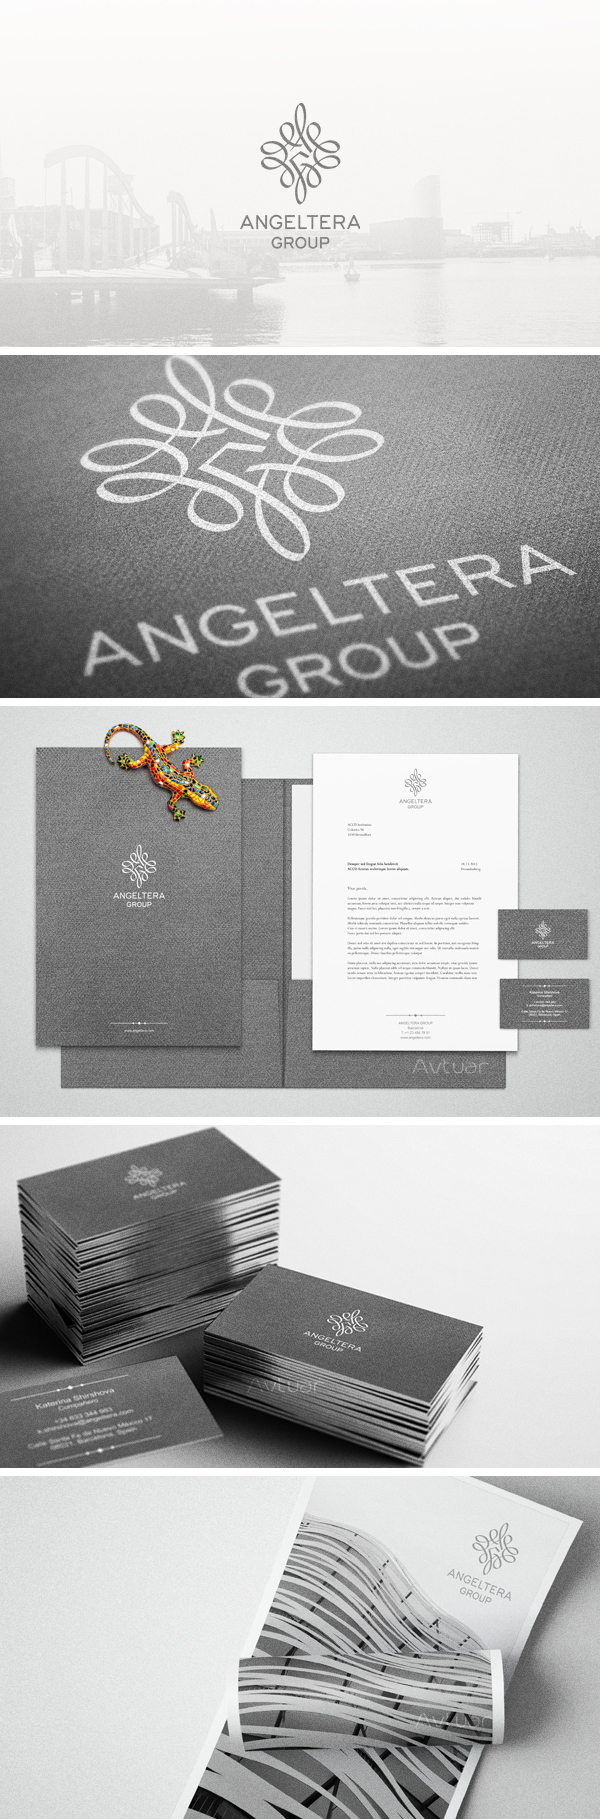 ANGELTERA GROUP